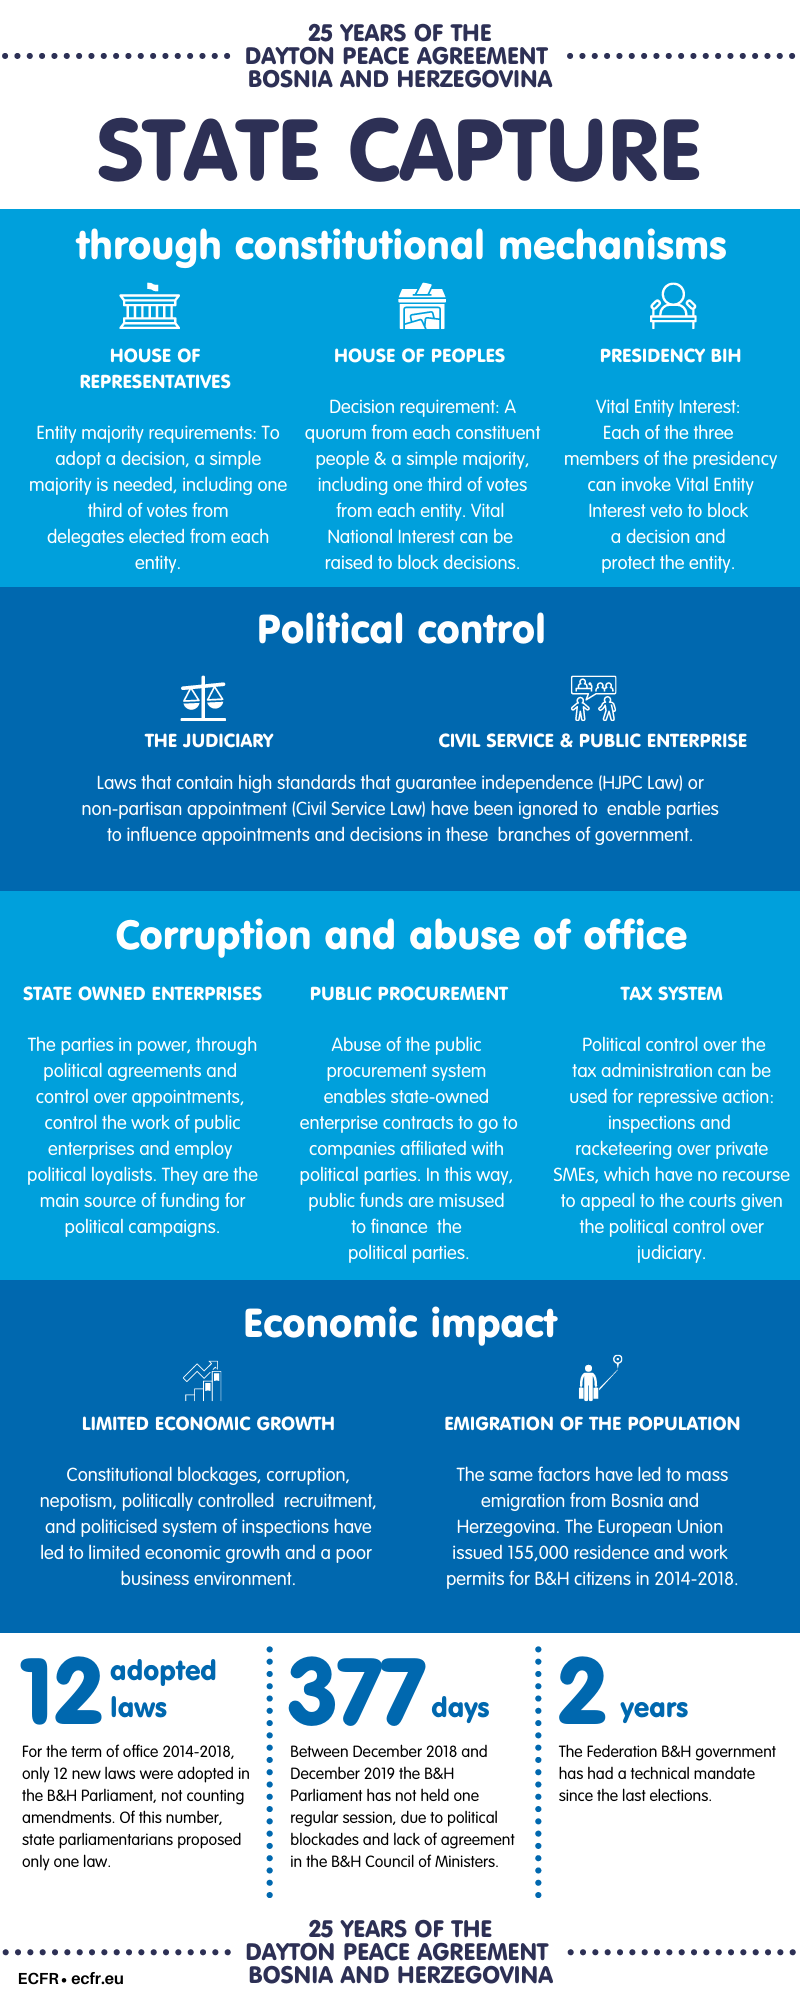 Infographic on state capture in Bosnia and Herzegovina through constitutional mechanisms, political control, corruption and abuse of office